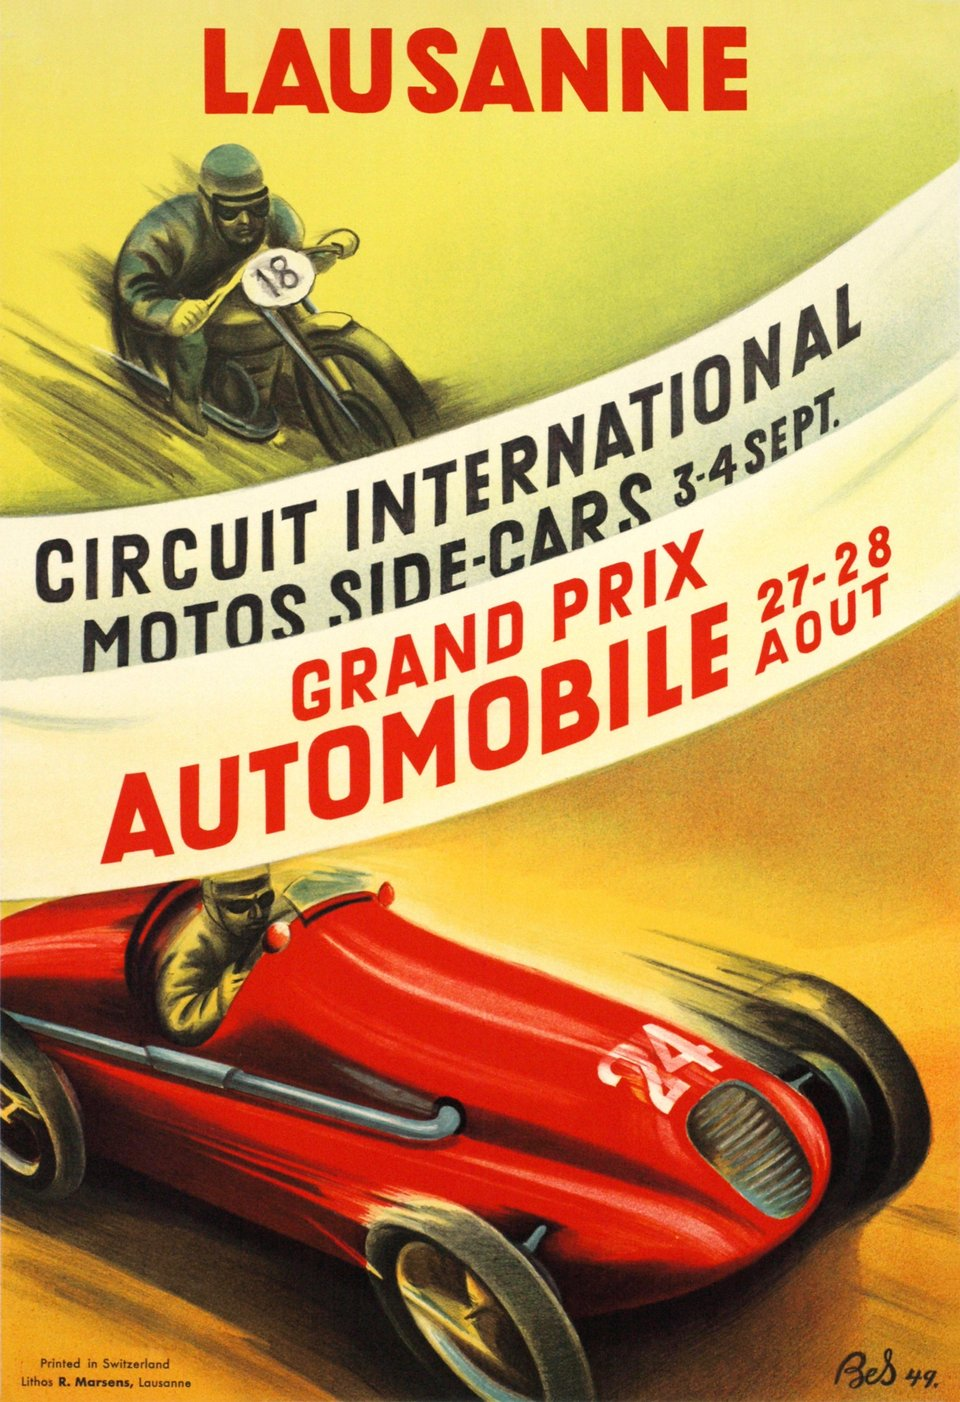 Lausanne, circuit international motos side-cars, Grand Prix Automobile – Vintage poster – Marguerite BOURNOUD-SCHORP – 1949